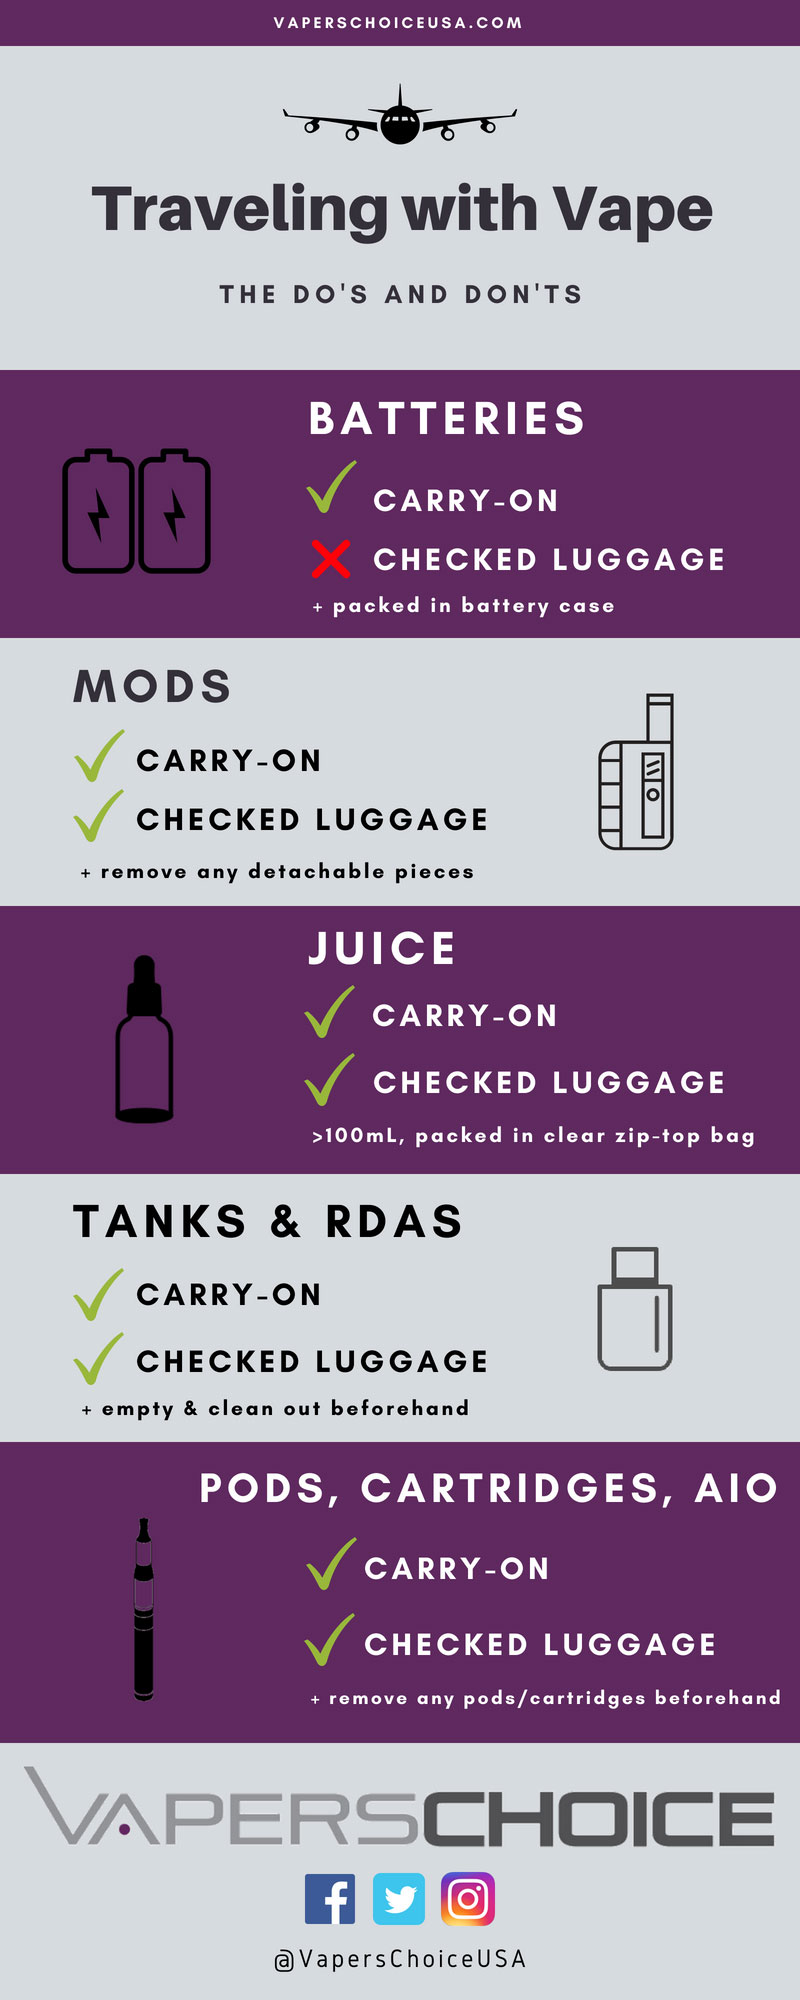 The Do's and Don'ts of Traveling with Vape